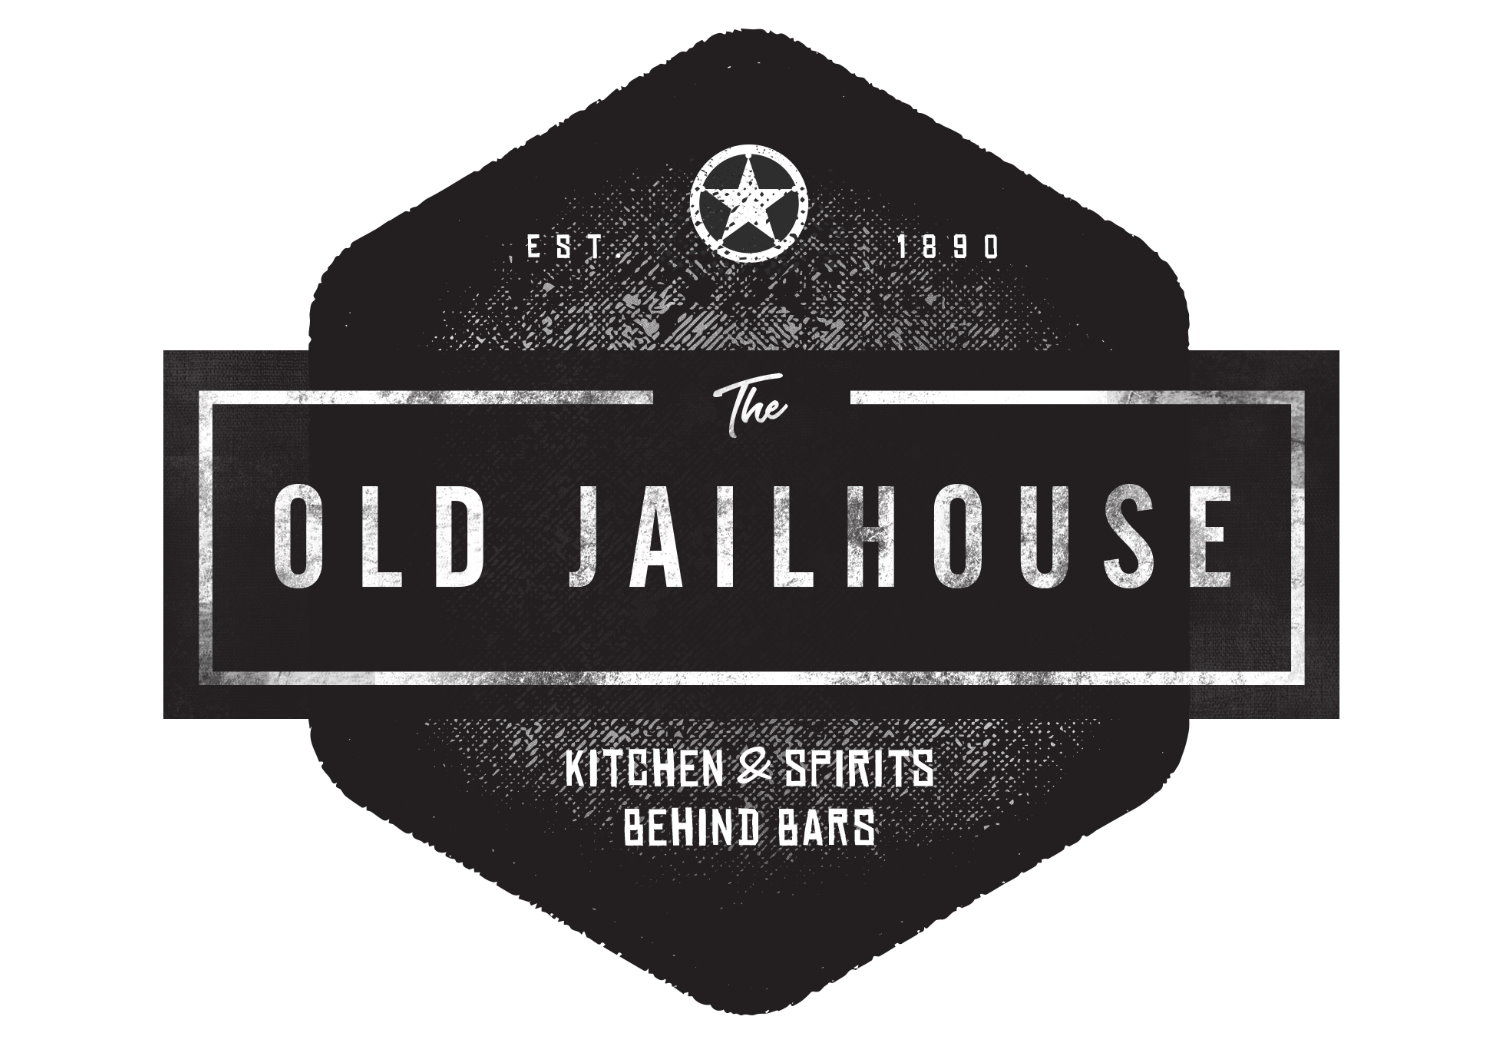 Old Jailhouse